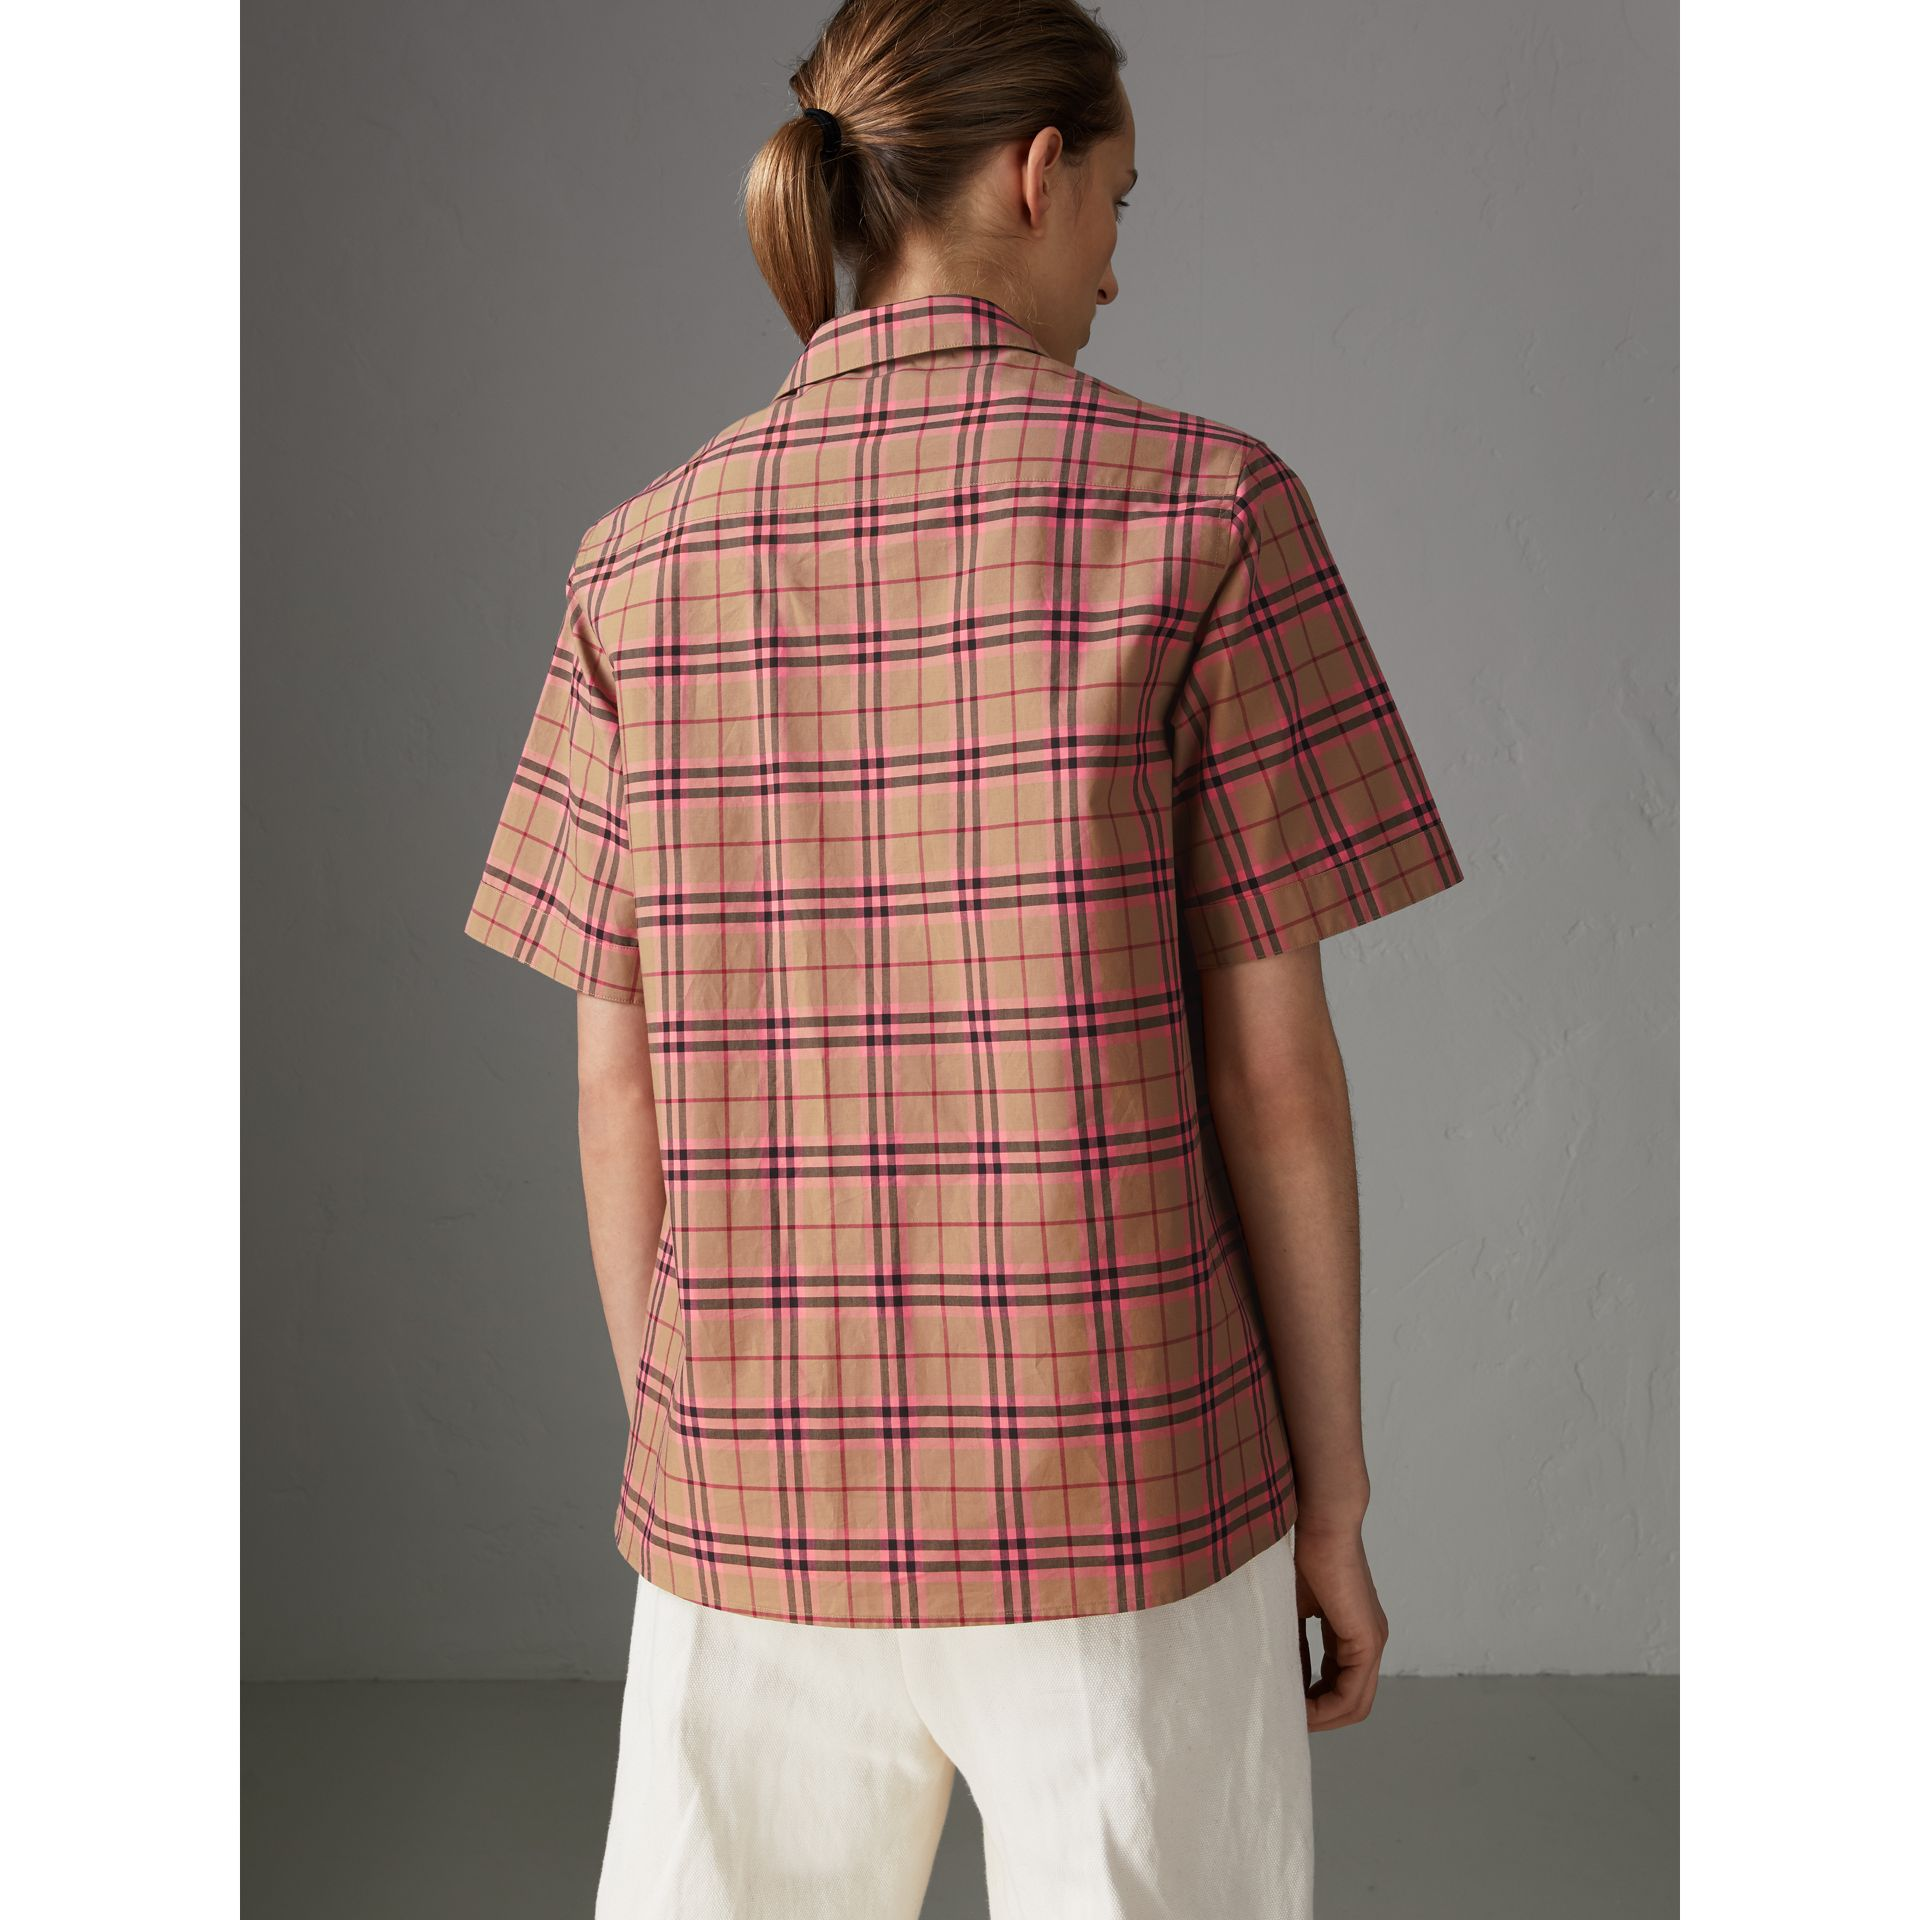 Check Cotton Short-sleeved Shirt in Pomegranate Pink - Women | Burberry United States - gallery image 2